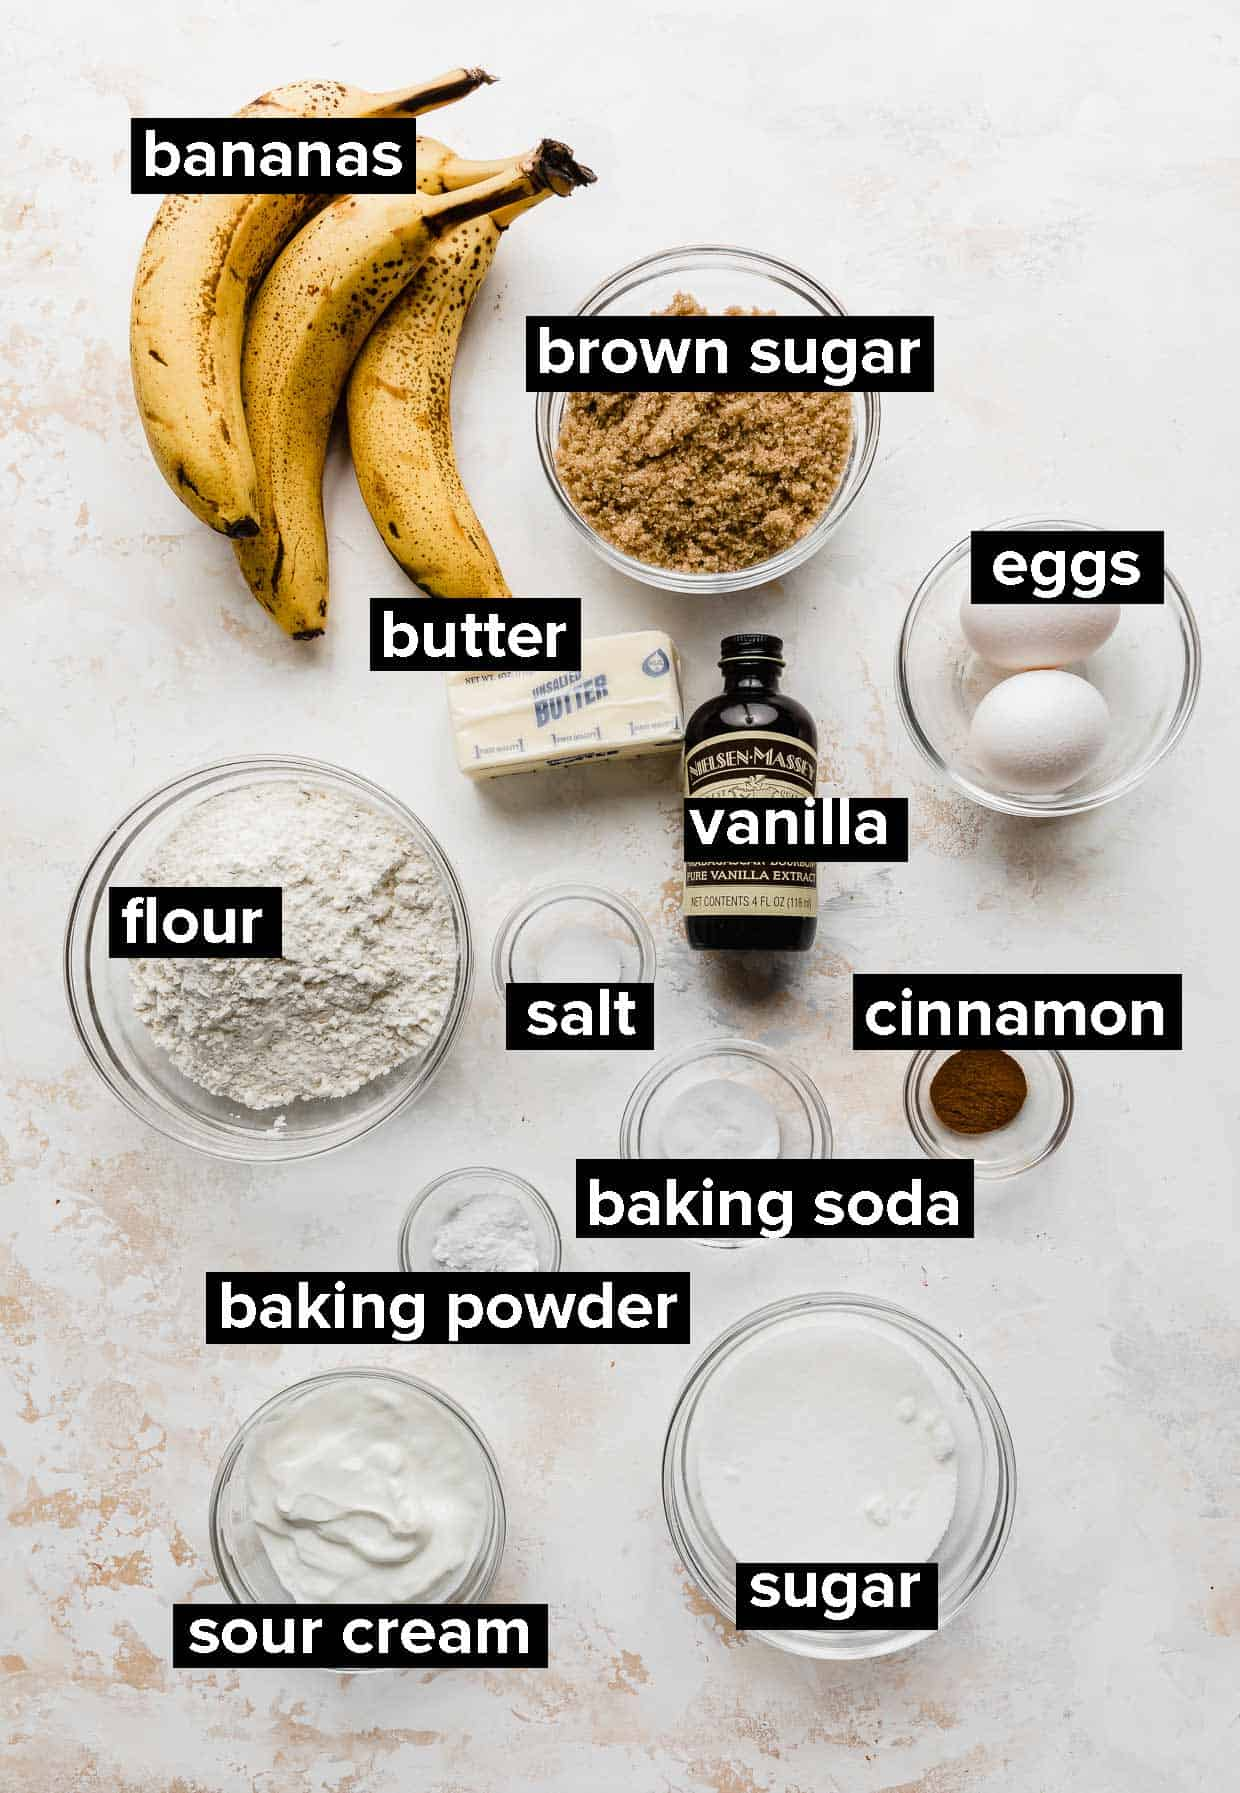 Ingredients used to make moist banana bread spread out on a cream and white textured background.